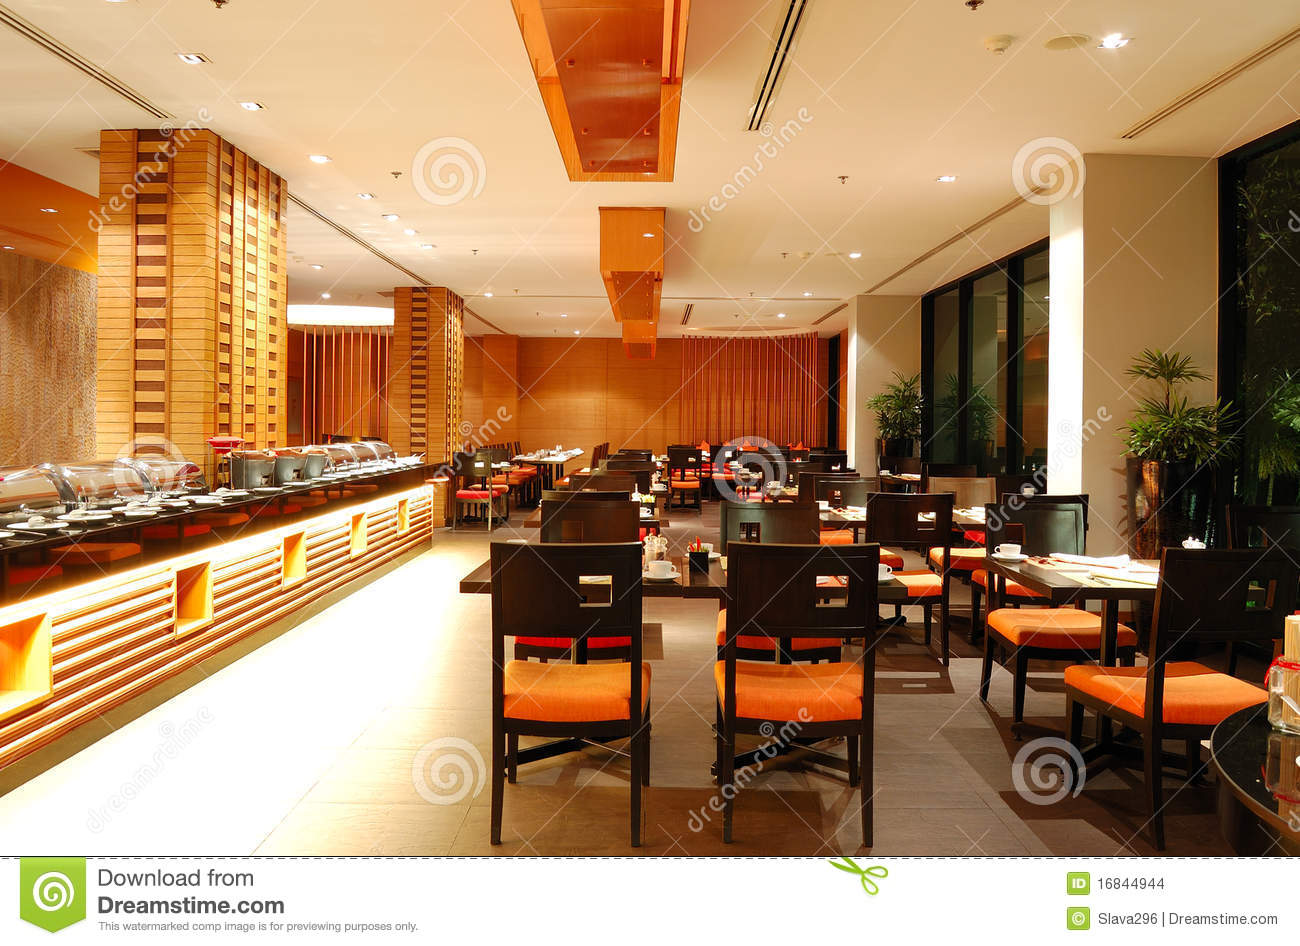 Night restaurant interior stock photo for Decoracion de restaurantes rusticos